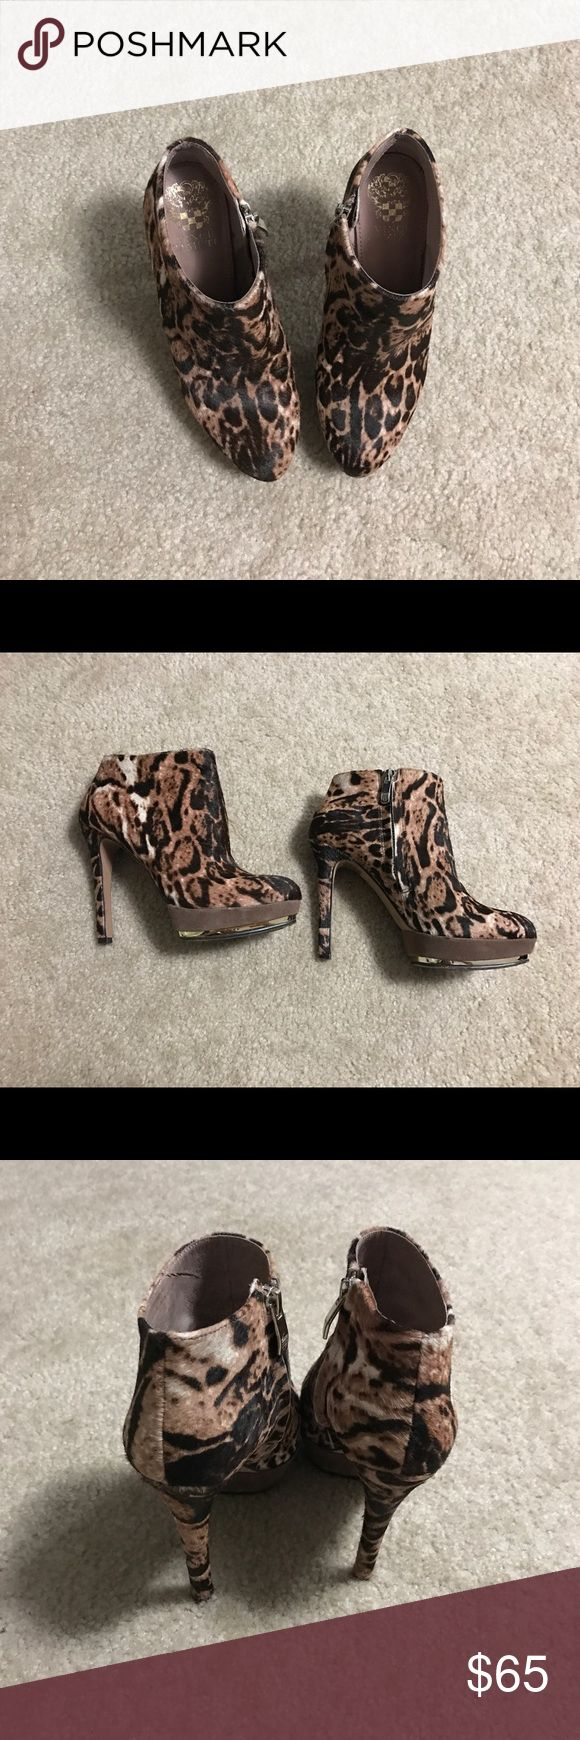 Vince Camuto cow hair fur ankle booties. 5B. Worn only a few times. Hate to see these go since they're a rare find but I know I probably won't wear them much. Vince Camuto Shoes Ankle Boots & Booties